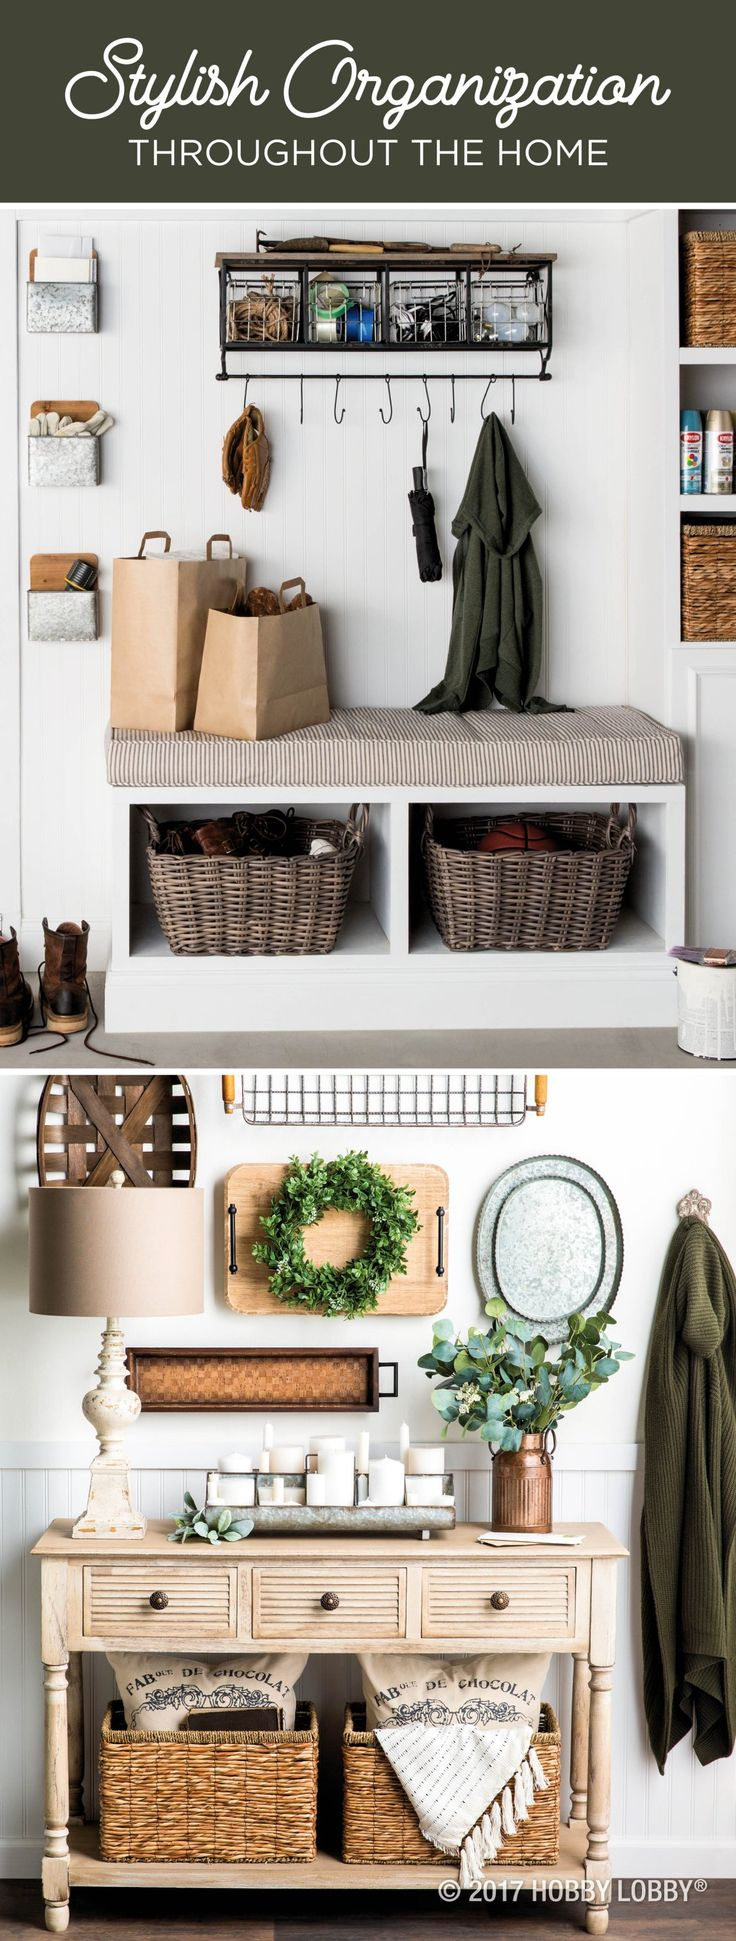 Use stylish bins, baskets and trays to take your home essentials from messy to chic!